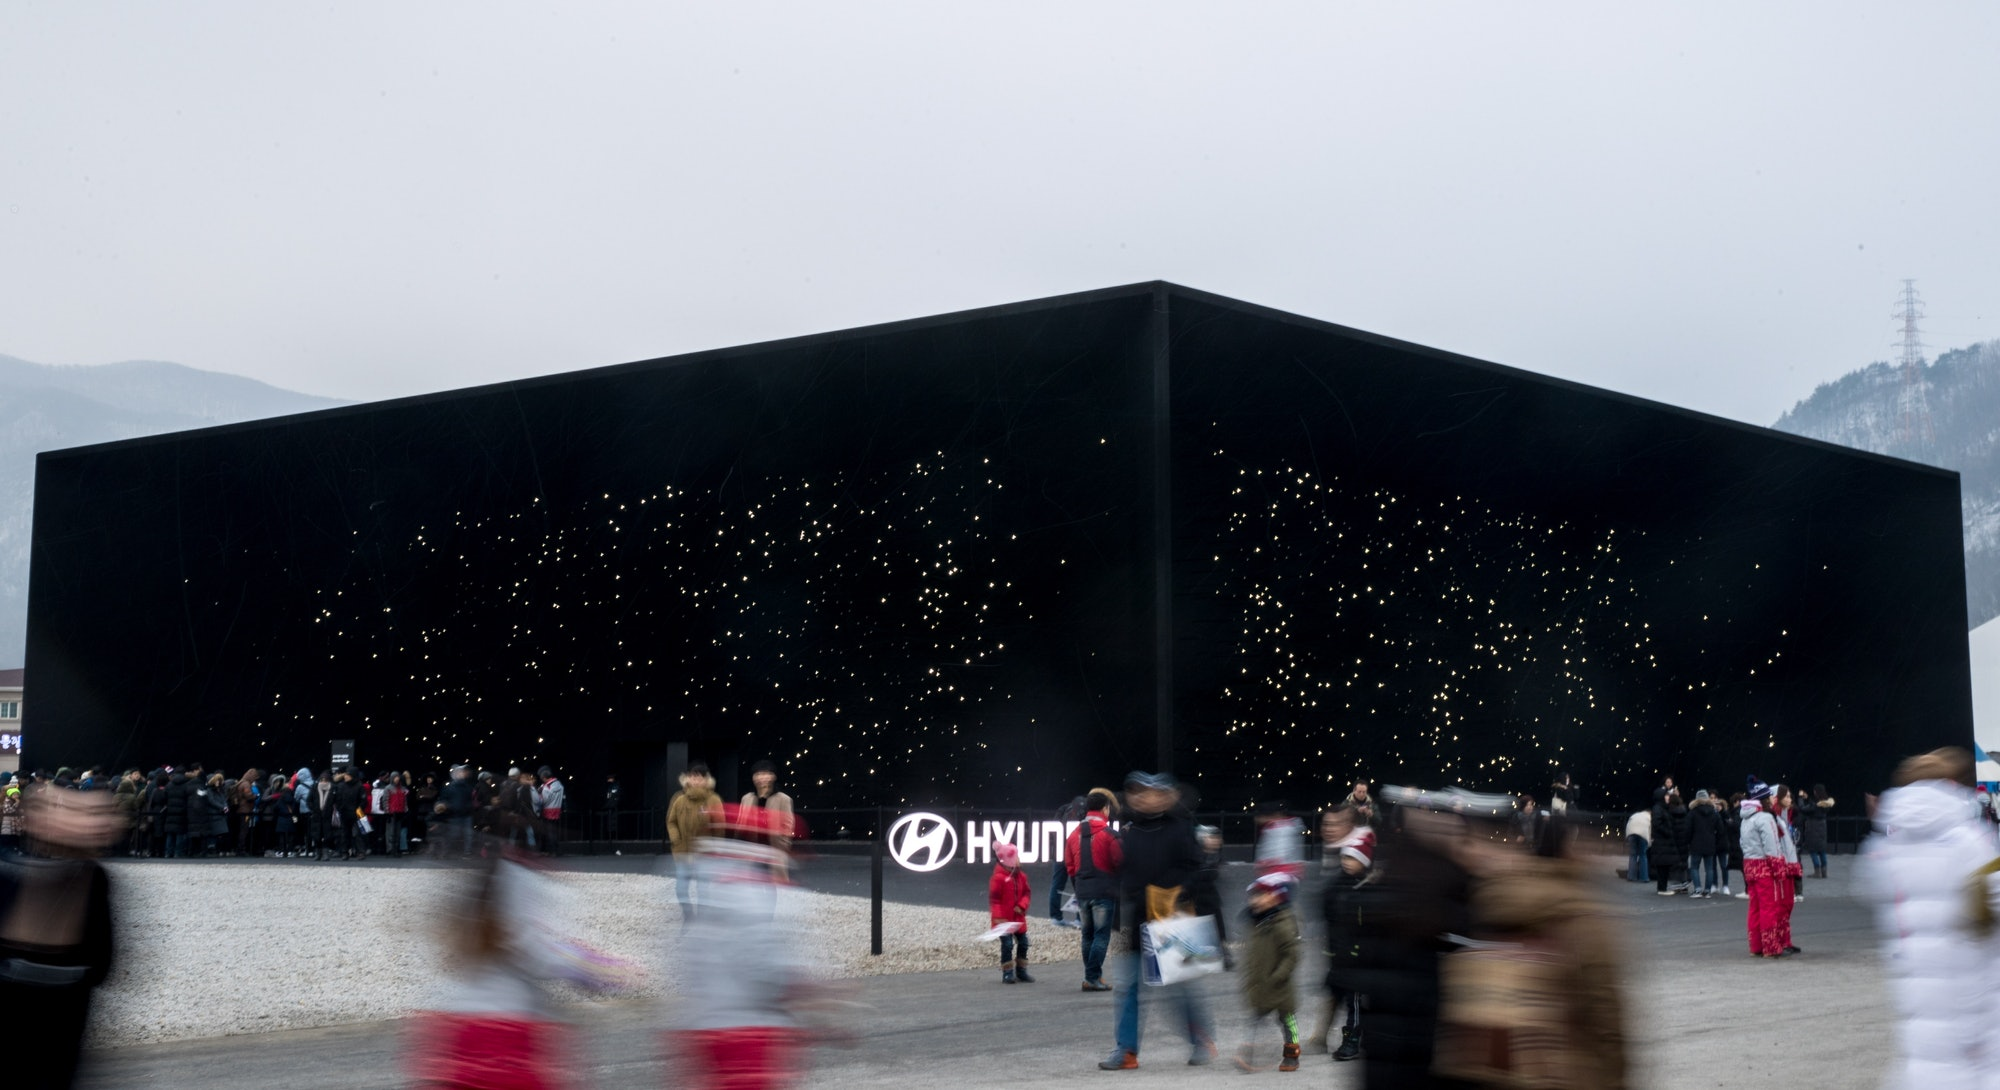 PYEONGCHANG, SOUTH KOREA - FEBRUARY 23, 2018: A pavilion, nicknamed the super-black building, designed by British architect Asif Khan and built by Hyundai, in Pyeonchang, the host location of the 2018 Winter Olympic Games; the building is sprayed on the outside with Vantablack, the darkest chemical substance on Earth. Sergei Bobylev/TASS (Photo by Sergei Bobylev\TASS via Getty Images)